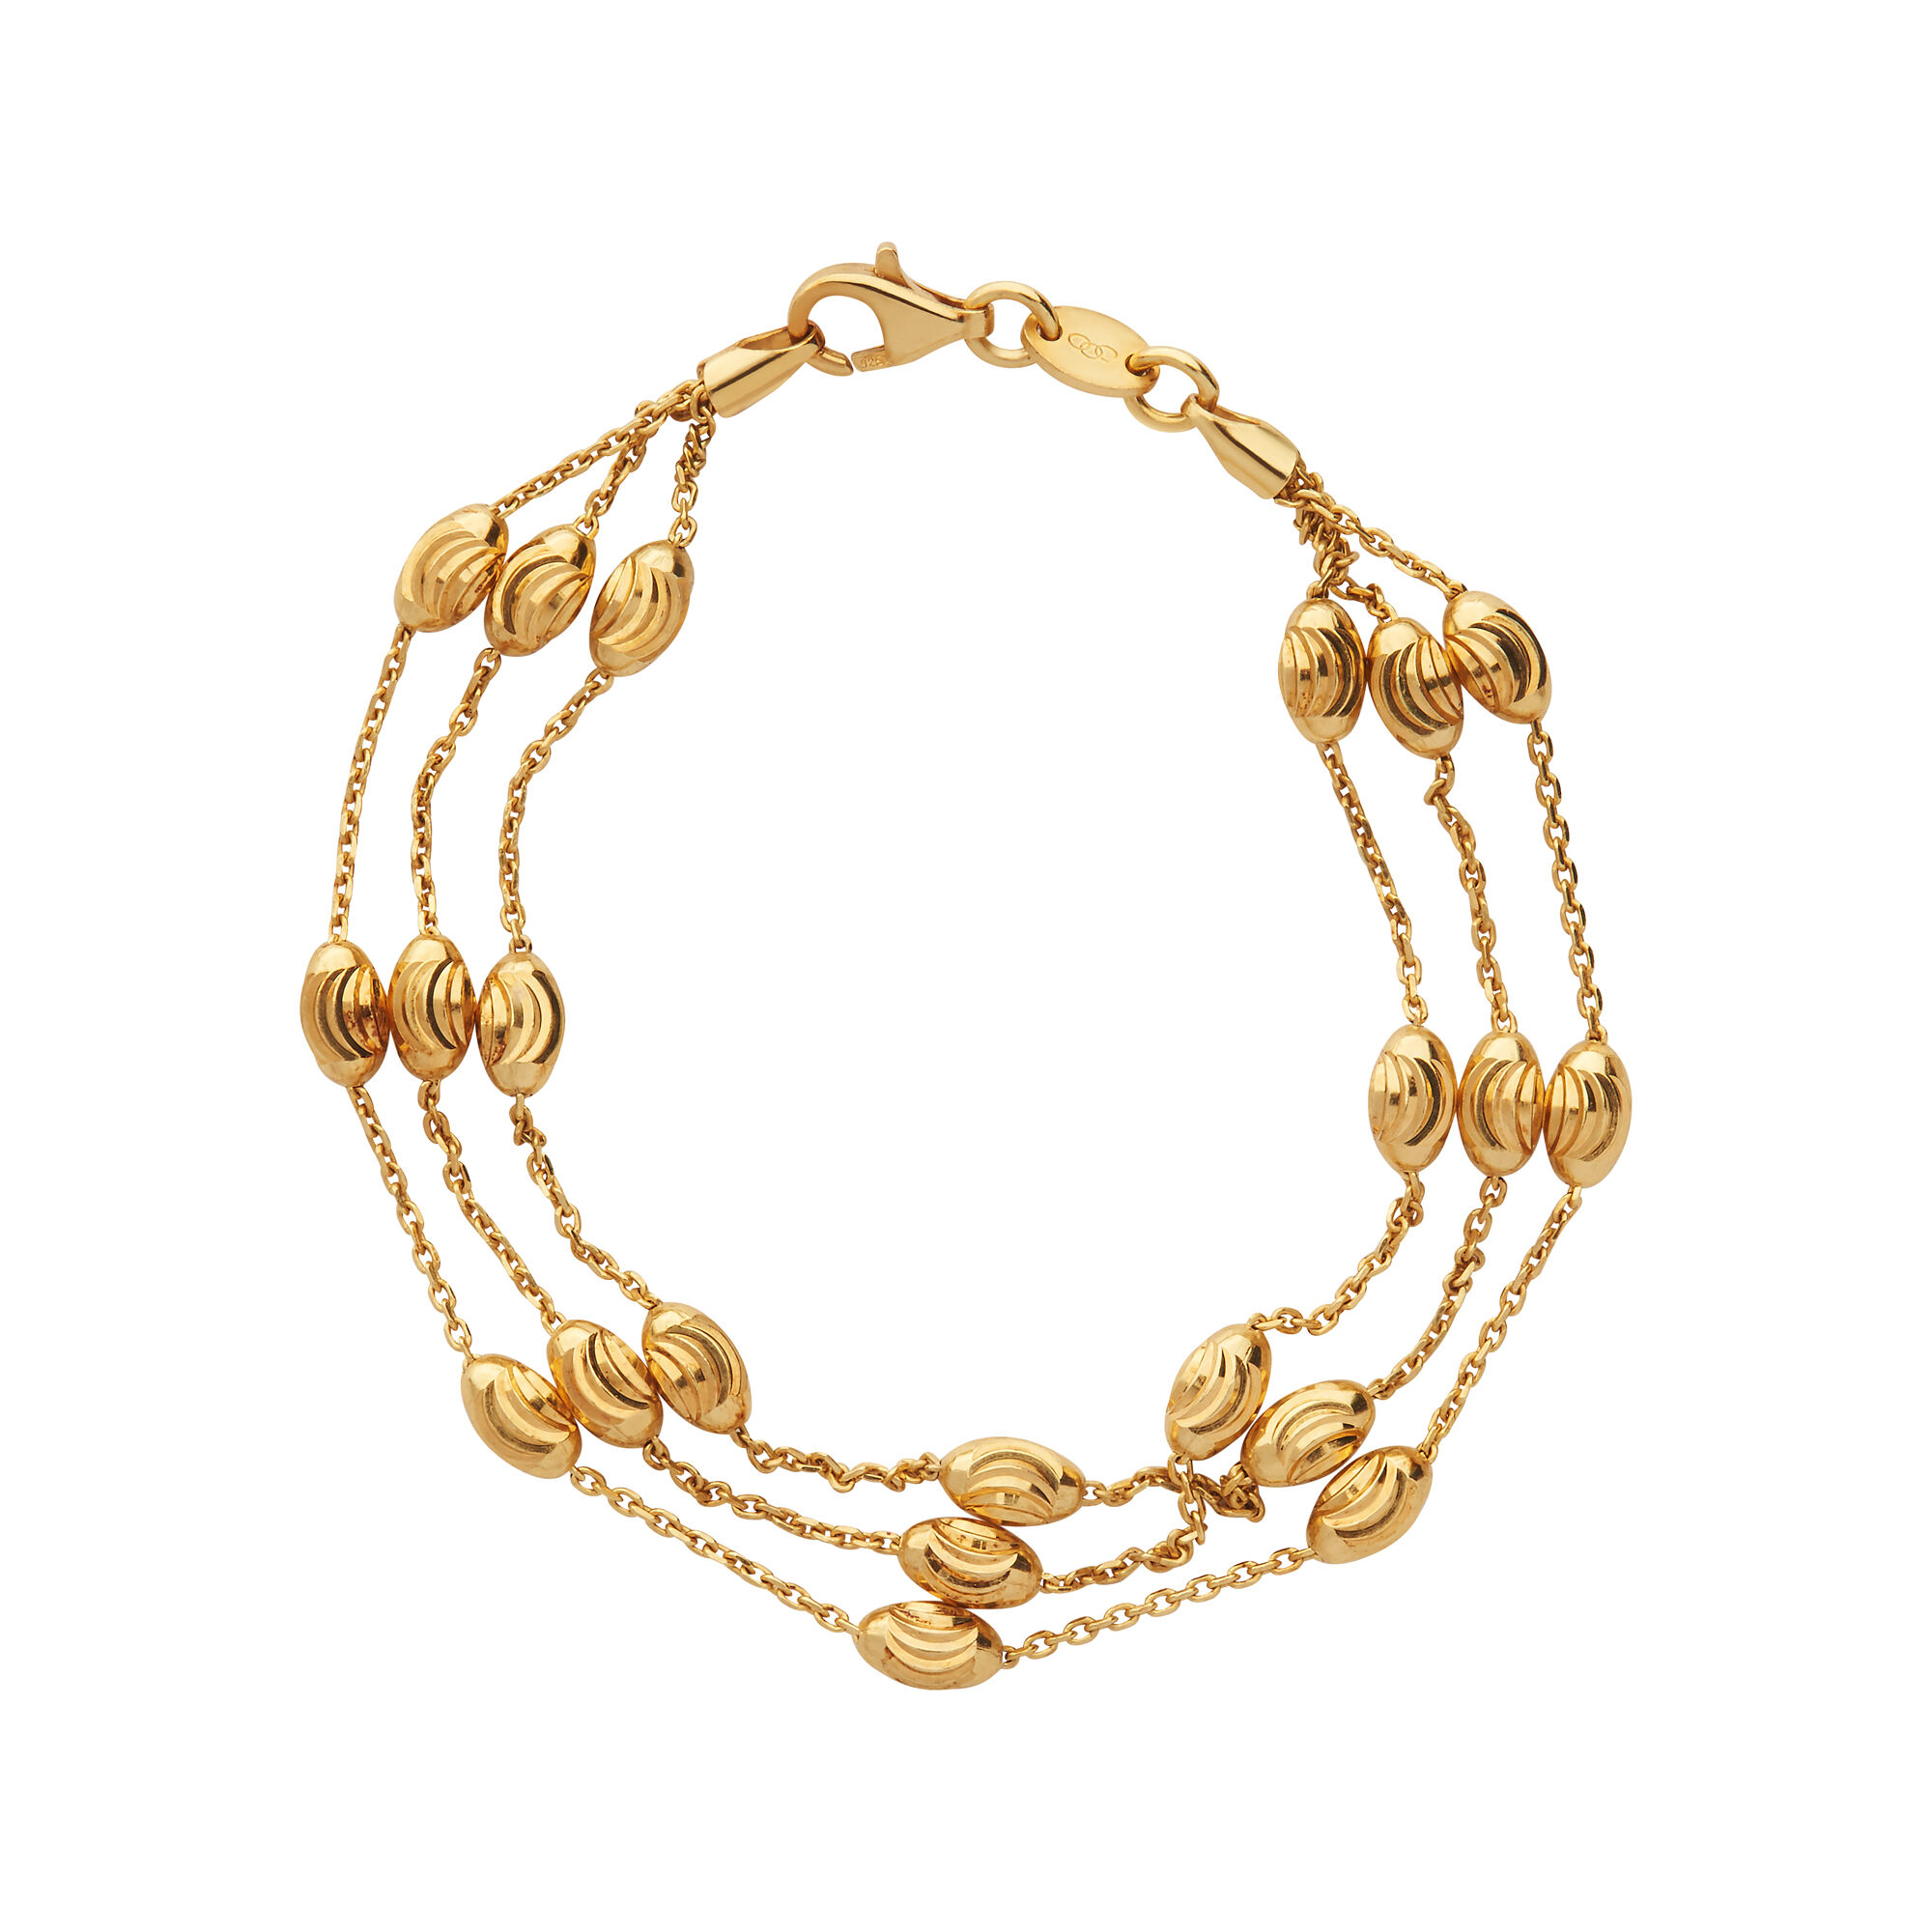 Ladies Essentials 18kt Yellow Gold Chain Bracelet | Links ...